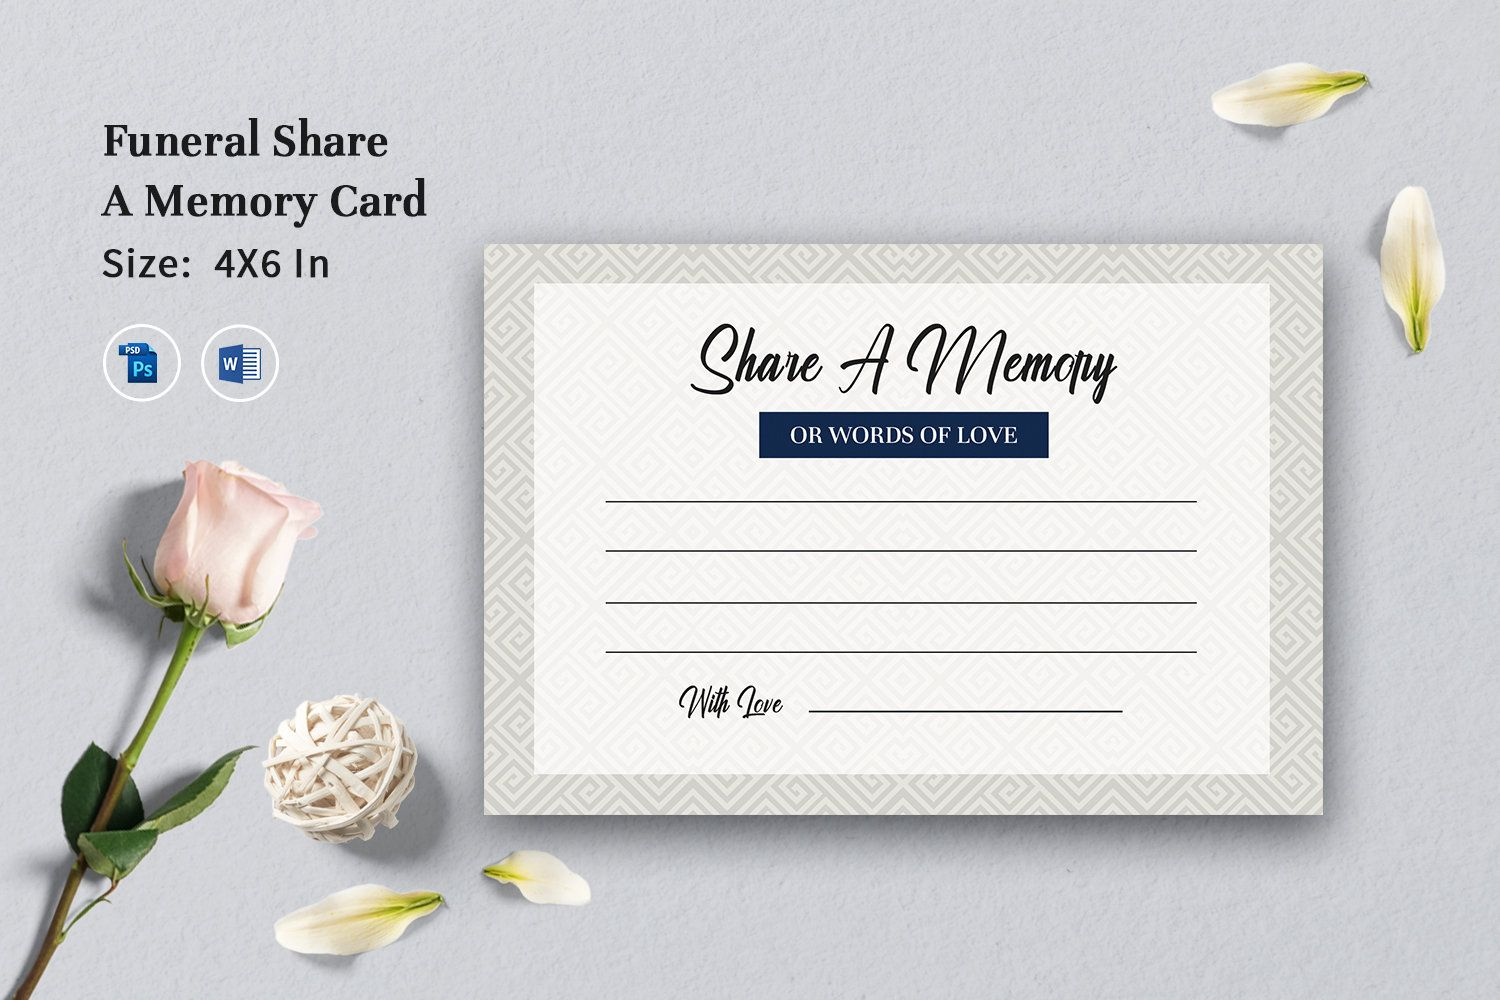 Share A Memory Card Printable Share A Memory Card Template Etsy Card Template Memory Cards Memorial Cards For Funeral